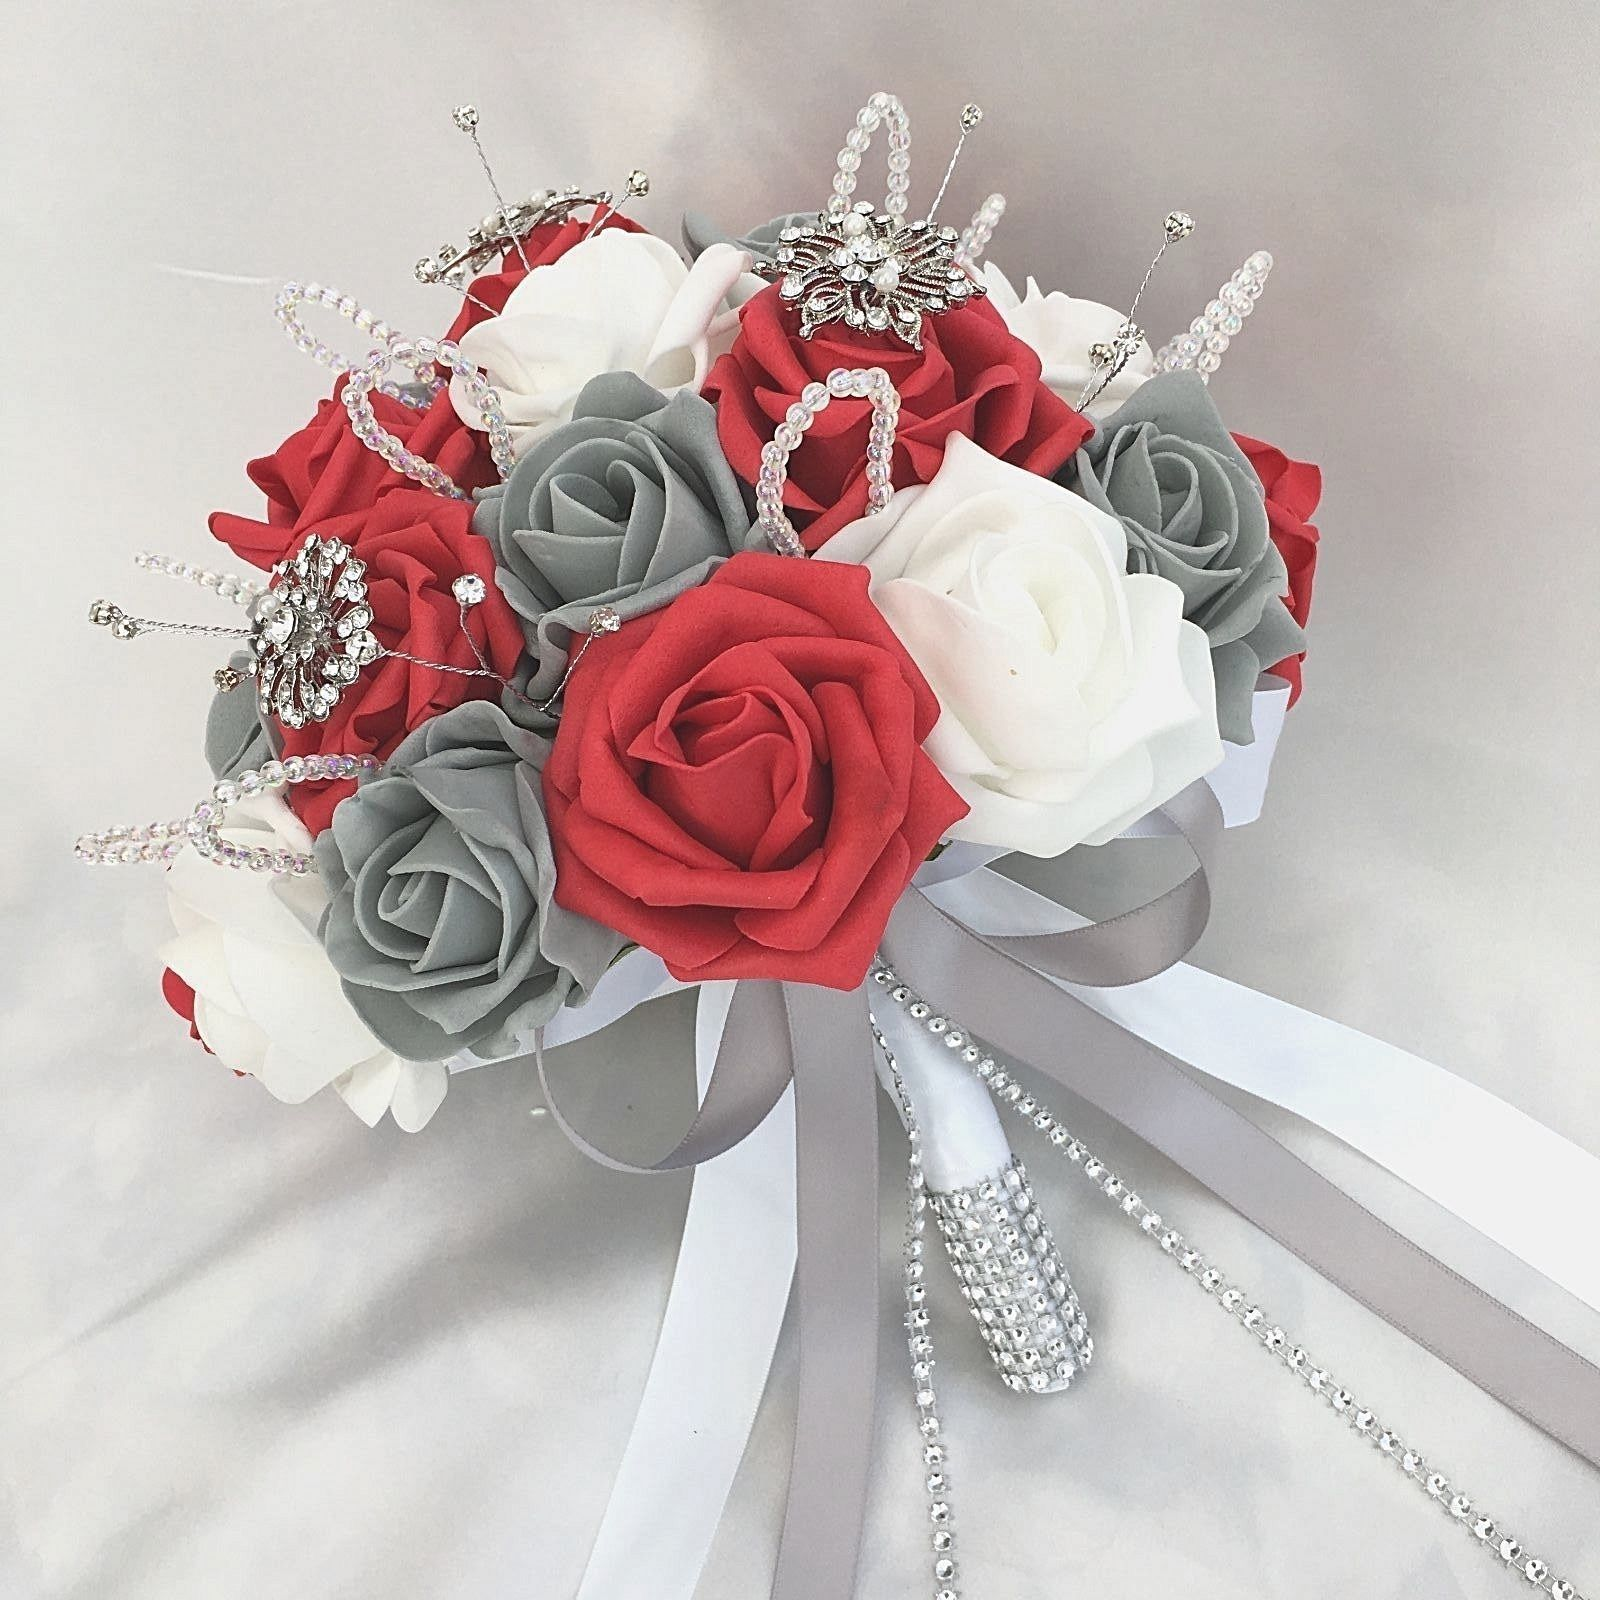 Red And White Wedding Flowers Curvy Brides Posy Bouquet Red White Grey Roses Artif Red Wedding Flowers Red Wedding Theme Artificial Flowers Wedding